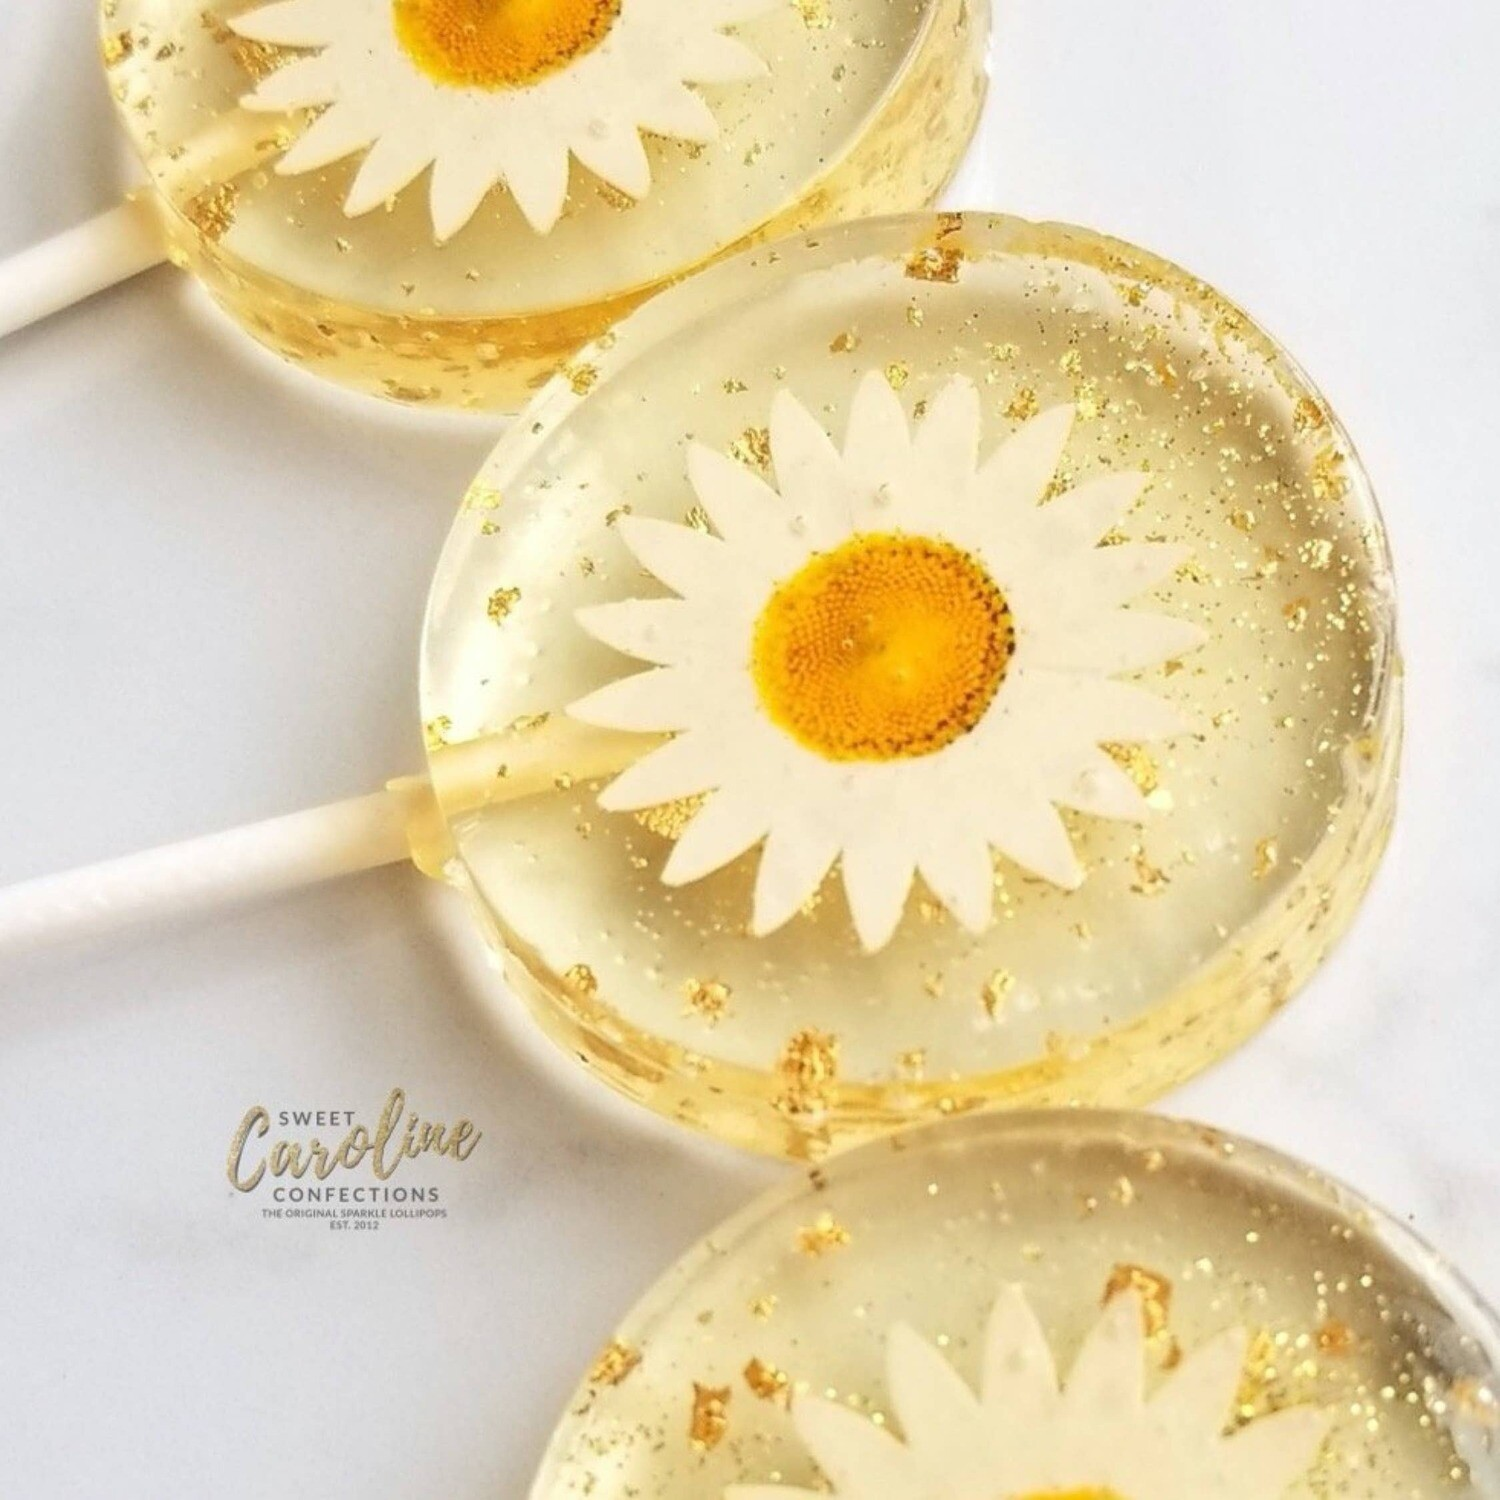 Sweet Caroline Confections - Daisy and Gold Lollipops, Mandarin Orange